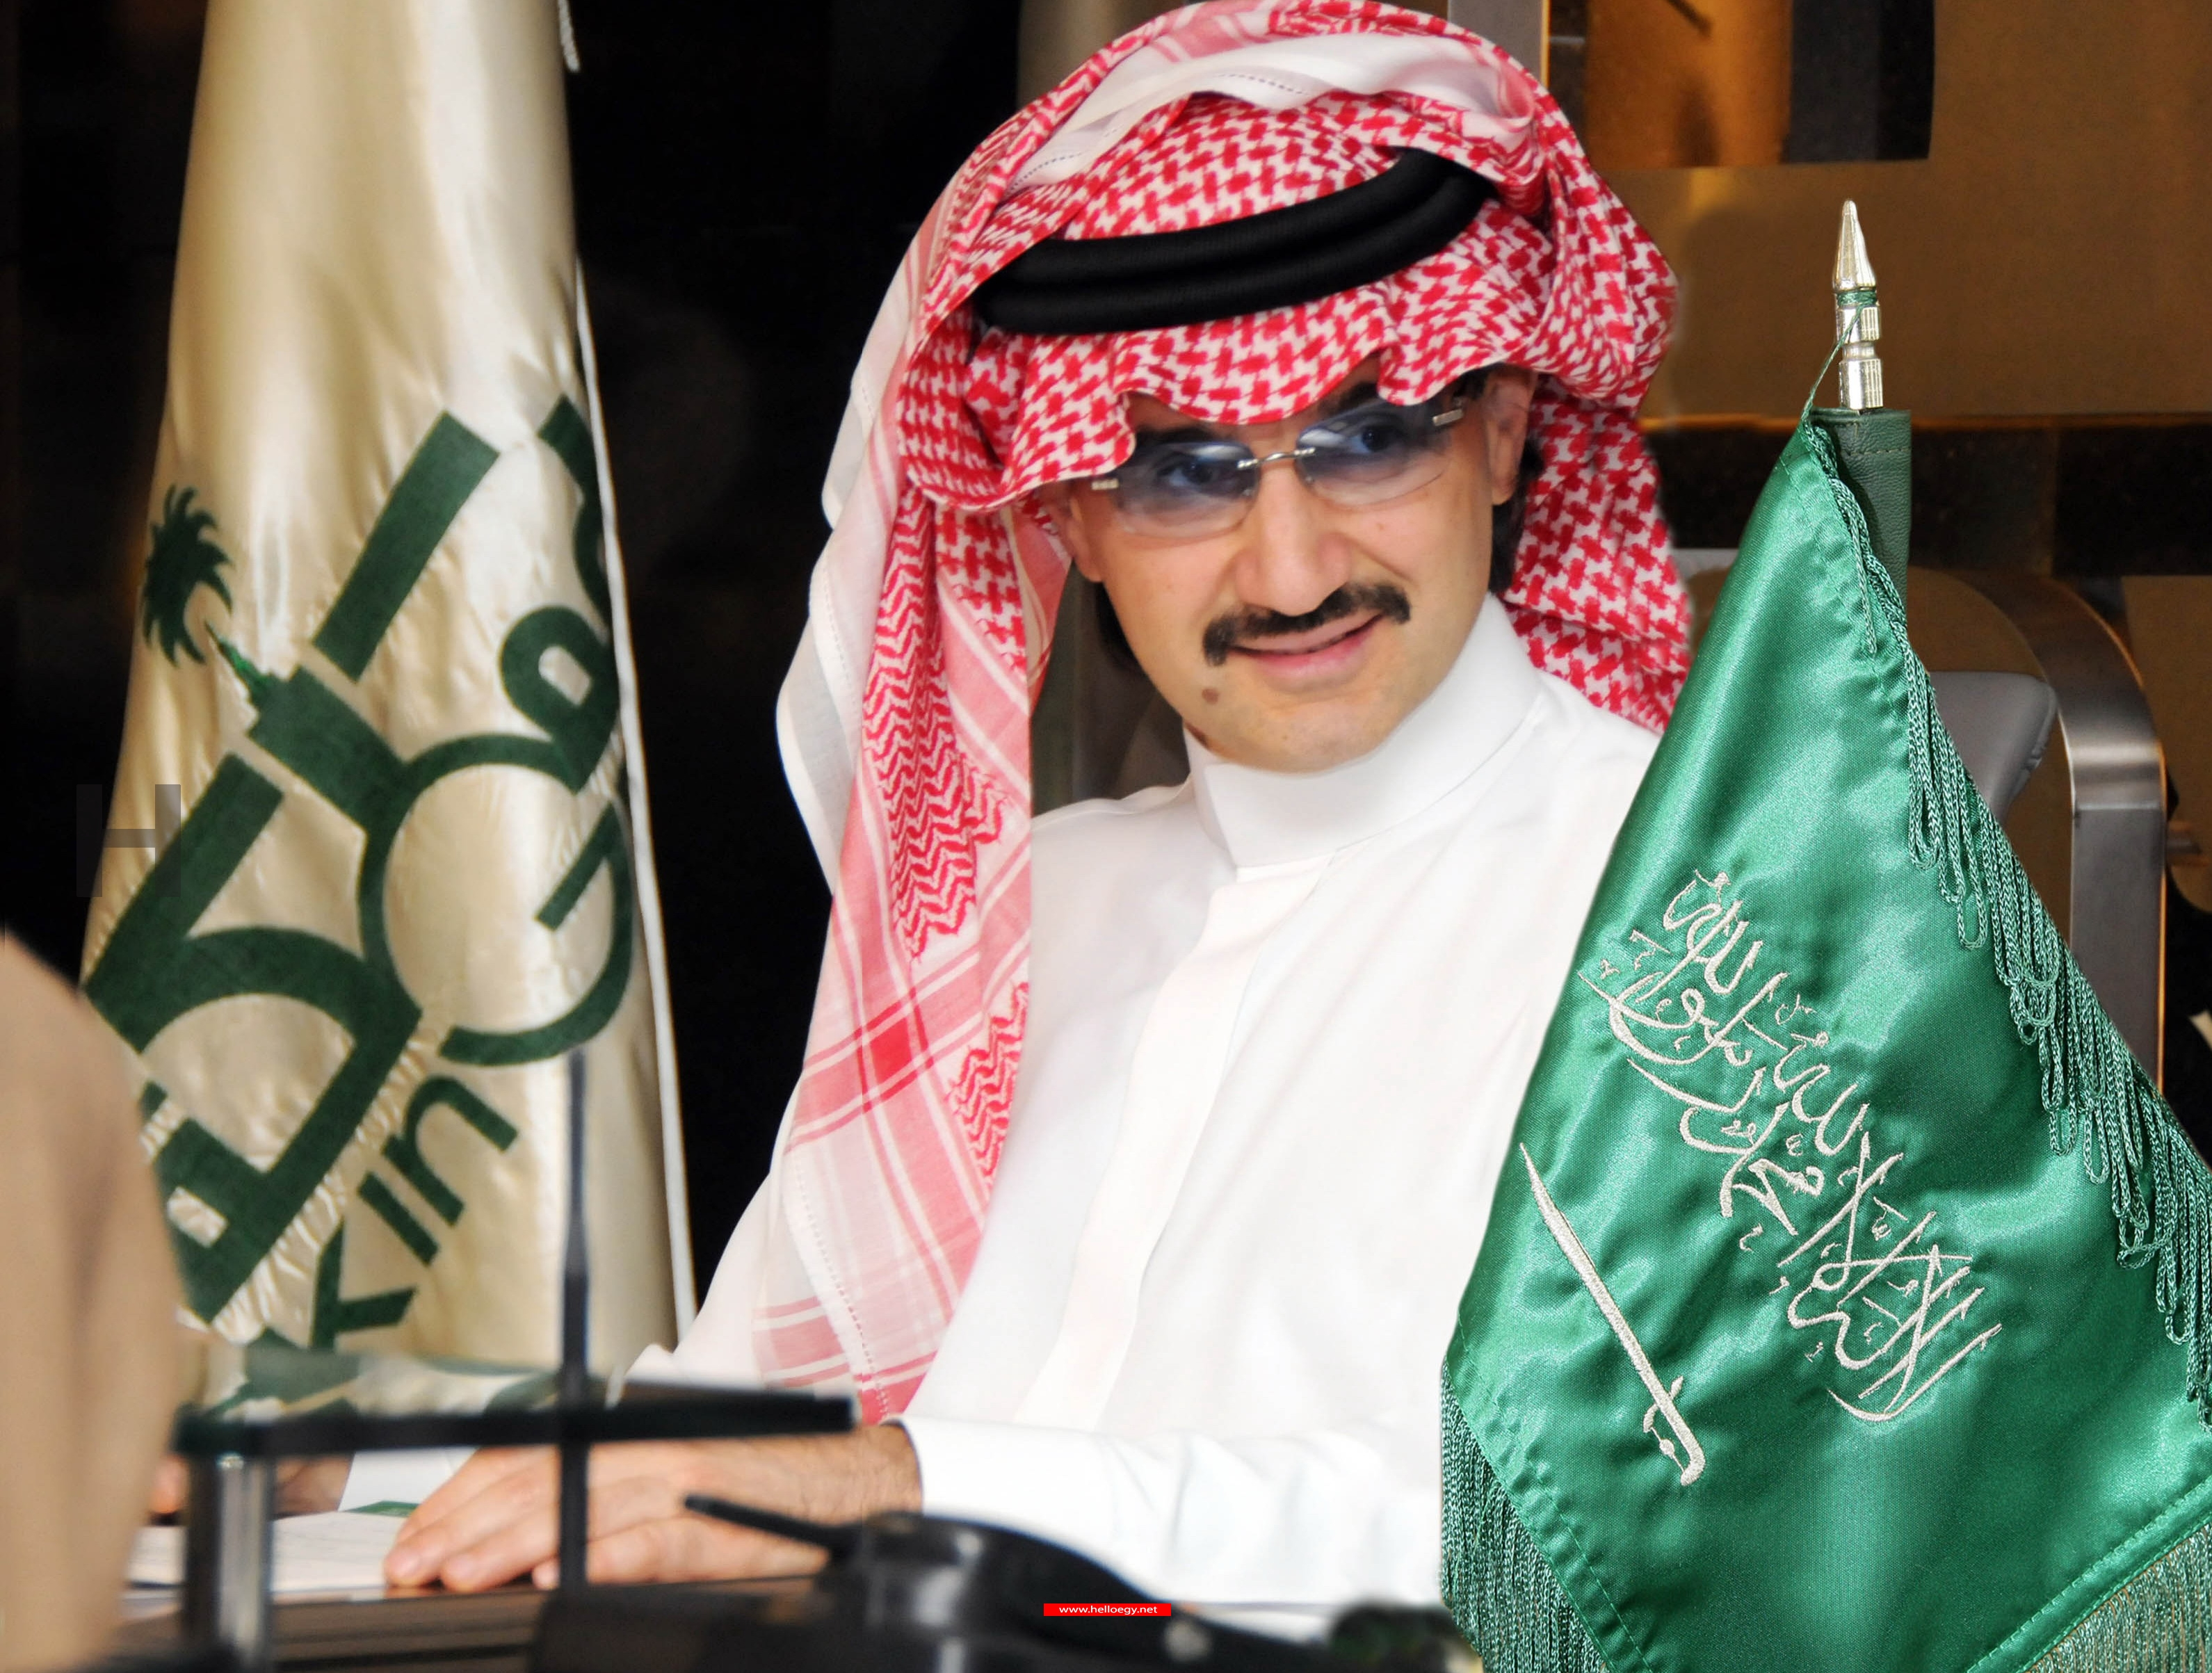 Prince Alwaleed And The Curious Case Of Kingdom Holding Stock